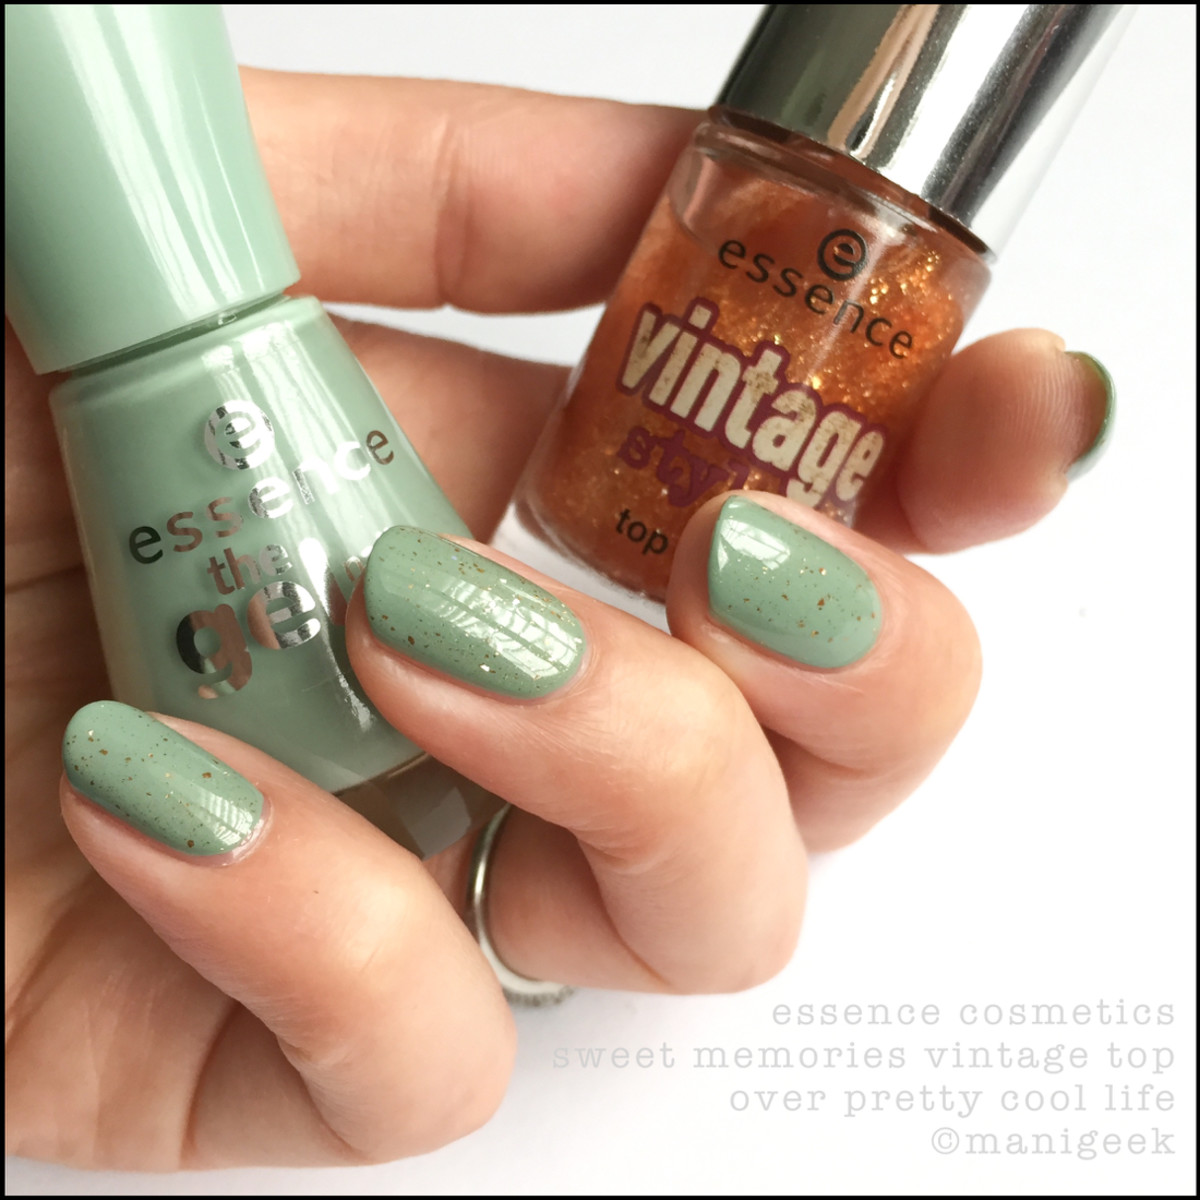 Essence Vintage Sweet Memories Top Coat over Pretty Cool Life